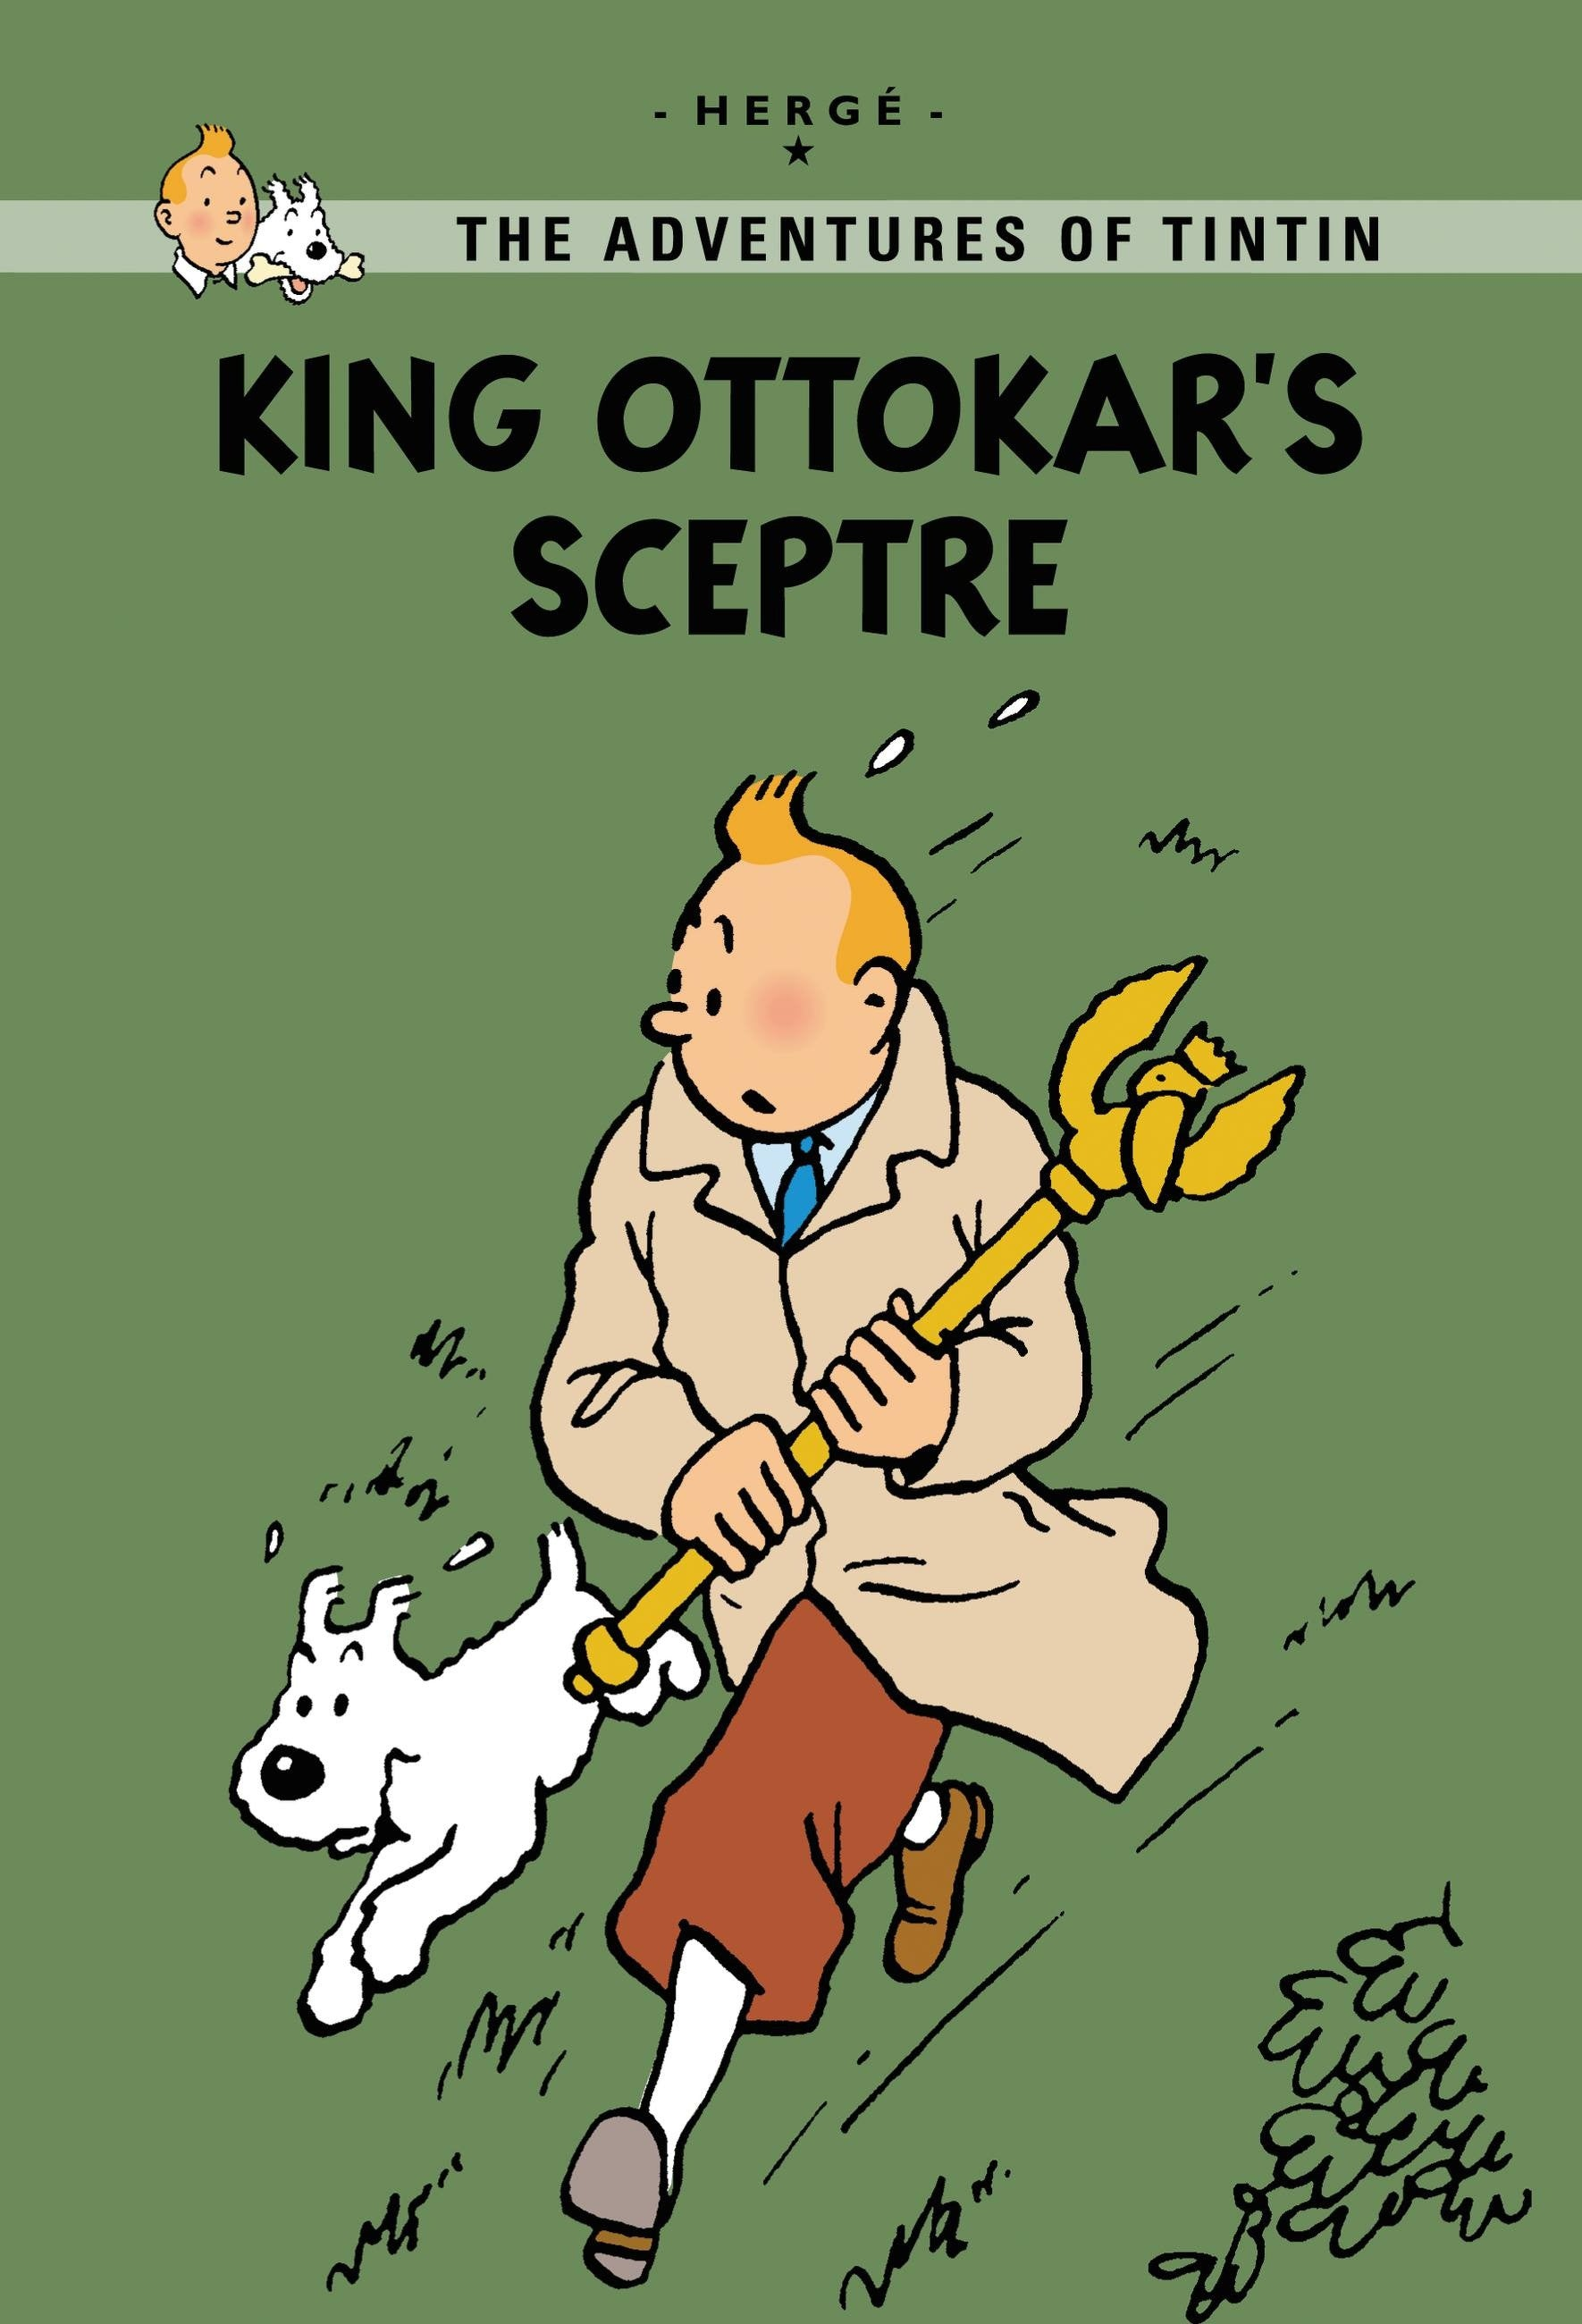 TINTIN YOUNG READERS: King Ottokar's Sceptre